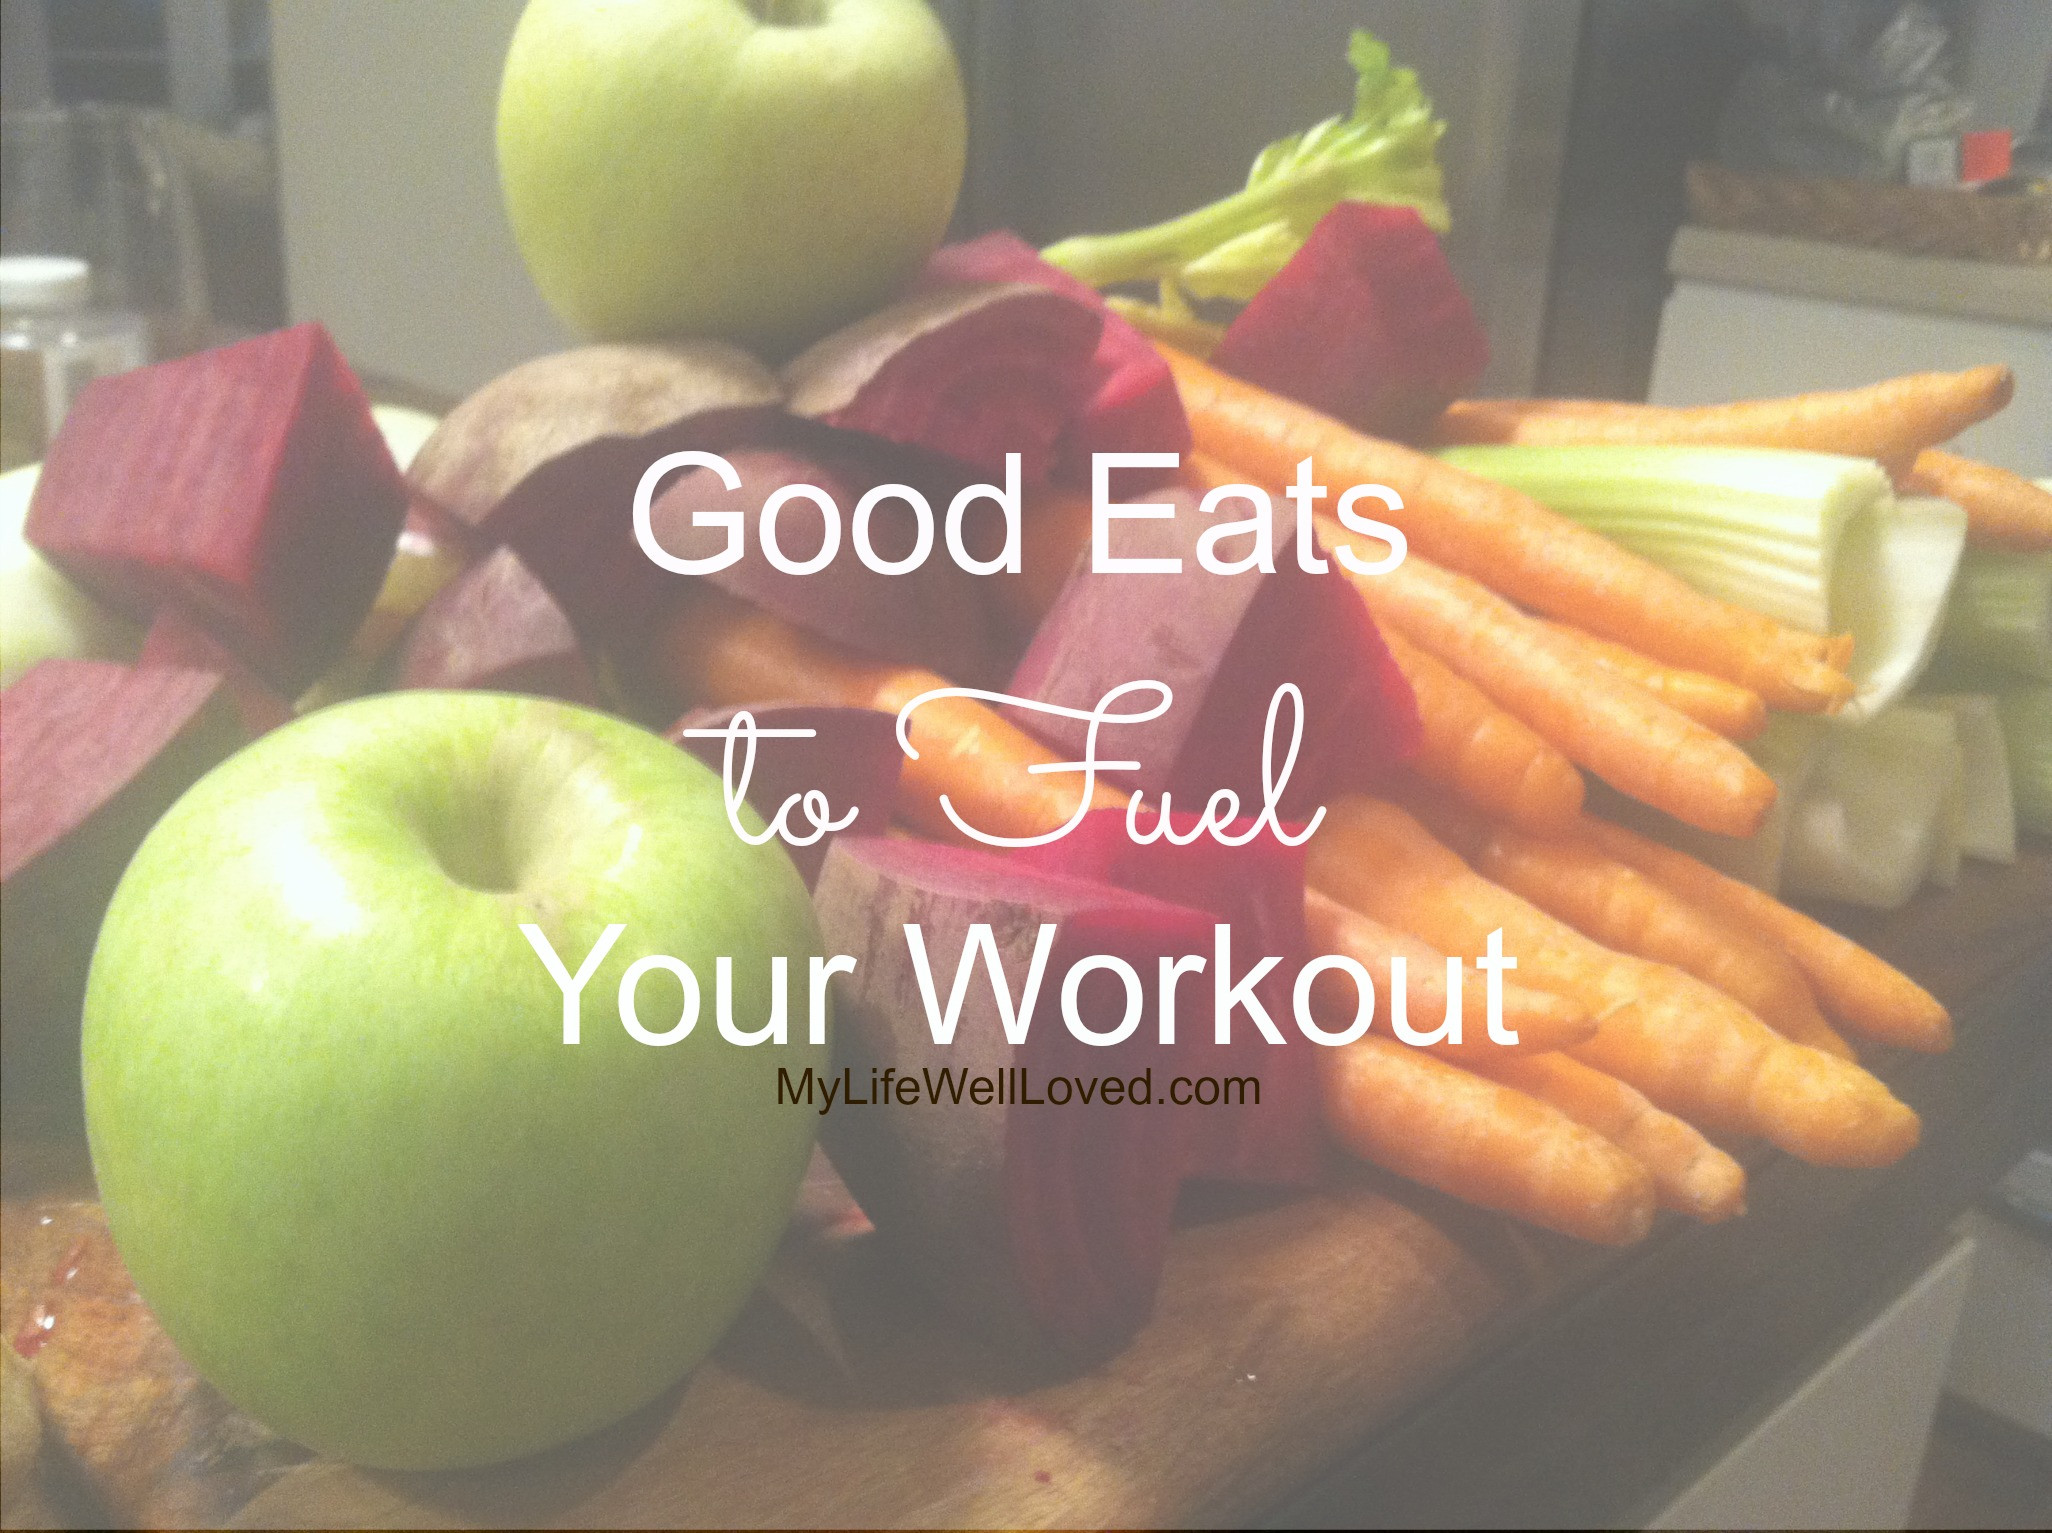 Healthy Workout Snacks  Best Healthy Workout Snacks My Life Well Loved